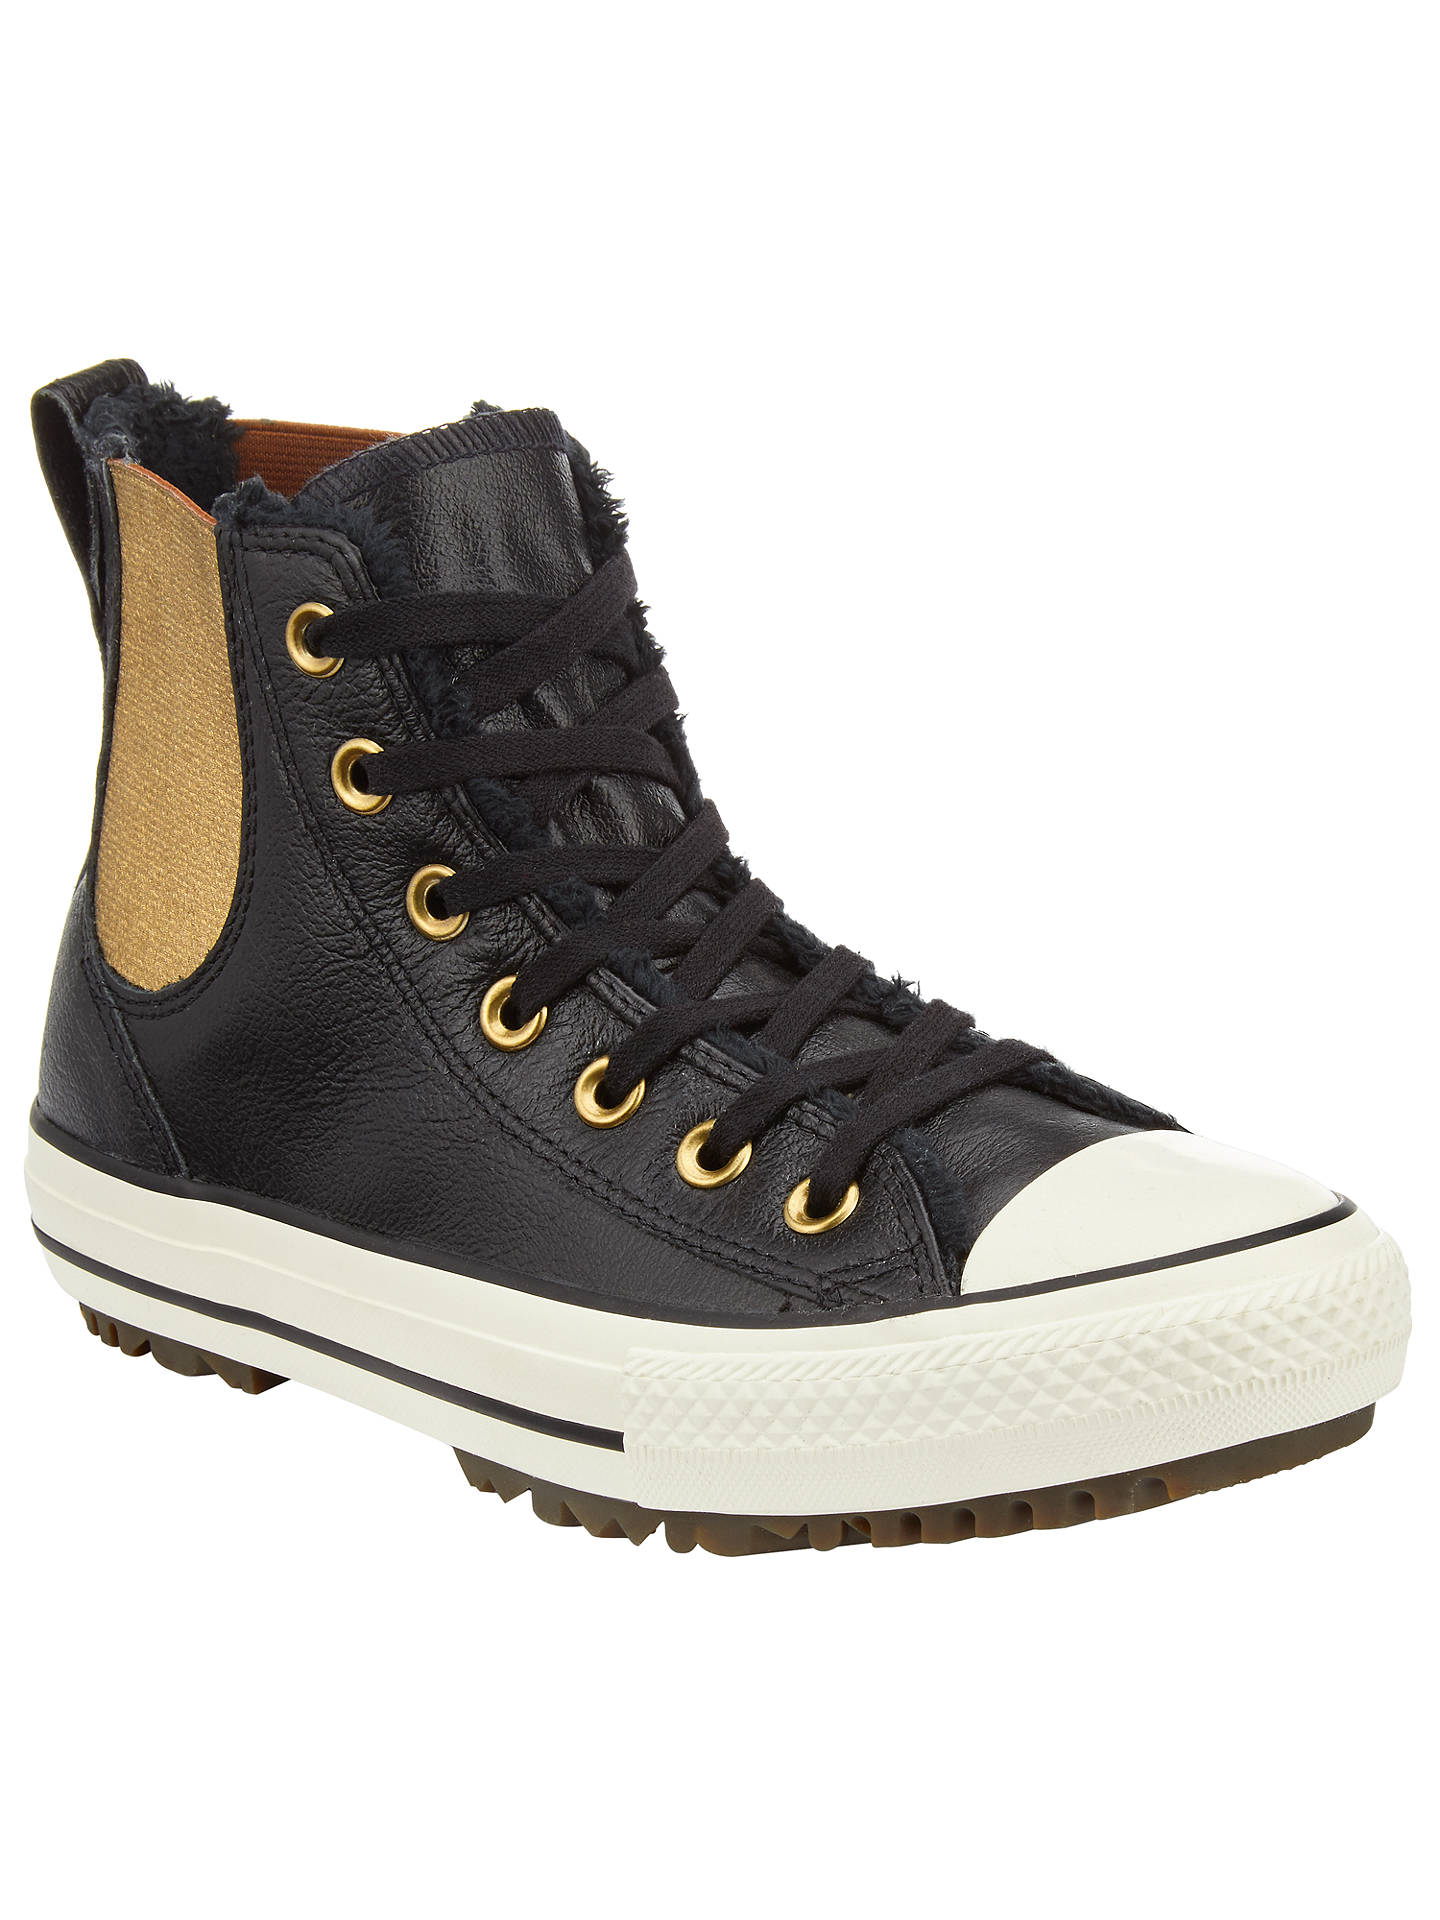 b0b8cde437a2 Buy Converse Chuck Taylor All Star Chelsea Boot Hi Top Trainers